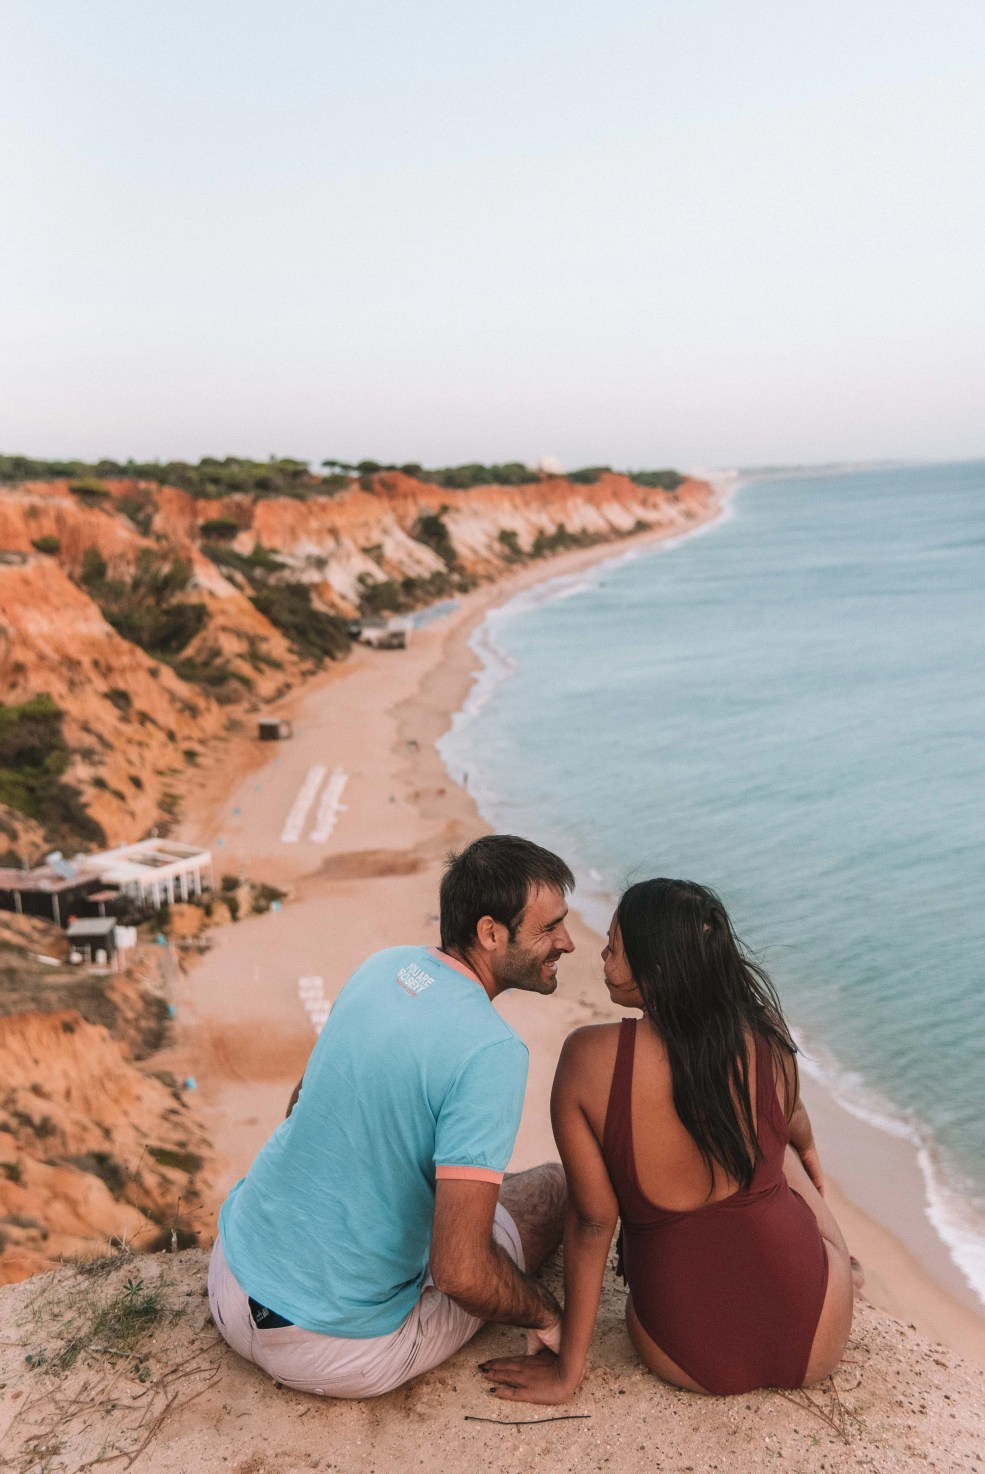 How to get to Albufeira from Lisbon, beaches in   Albufeira, where to stay in Albufeira, best time to   viit Albufeira, where to eat in Albufeira, how to get to Albufeira from Faro airport, Praia de Falesia